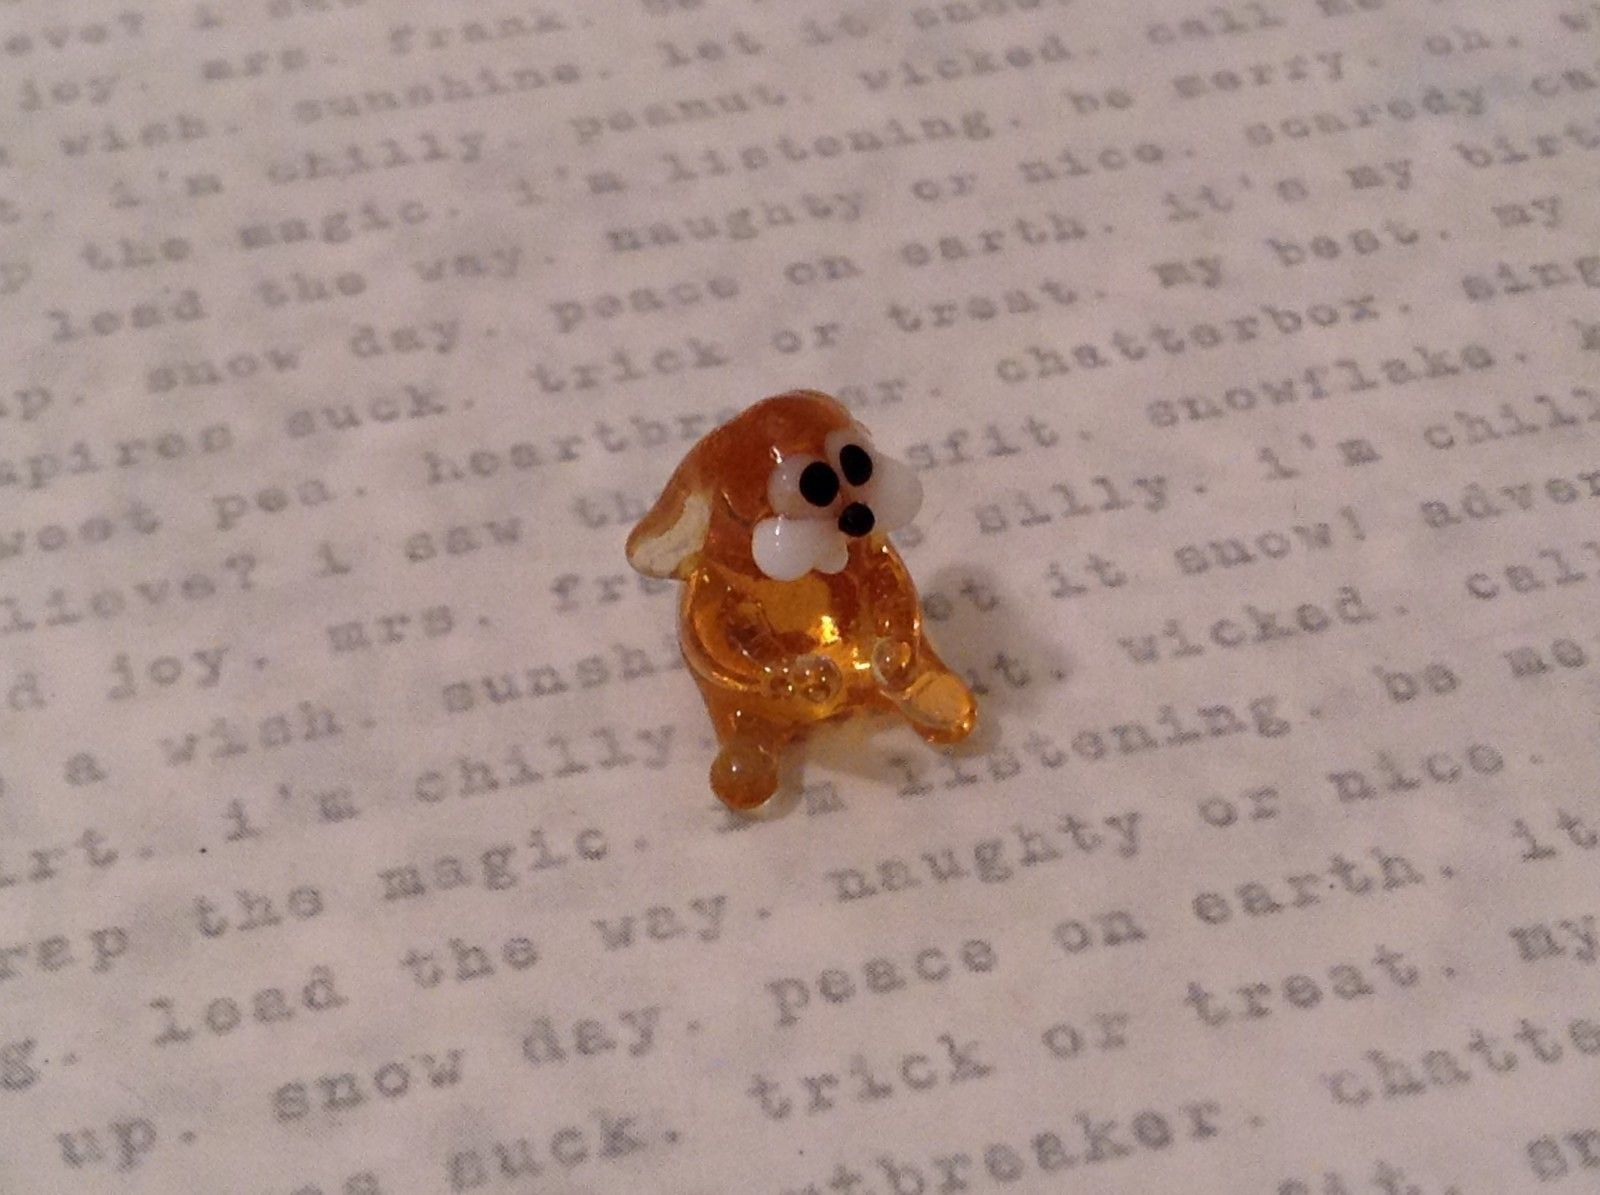 Micro miniature hand blown glass figurine amber bunny rabbit floppy ear USA NIB